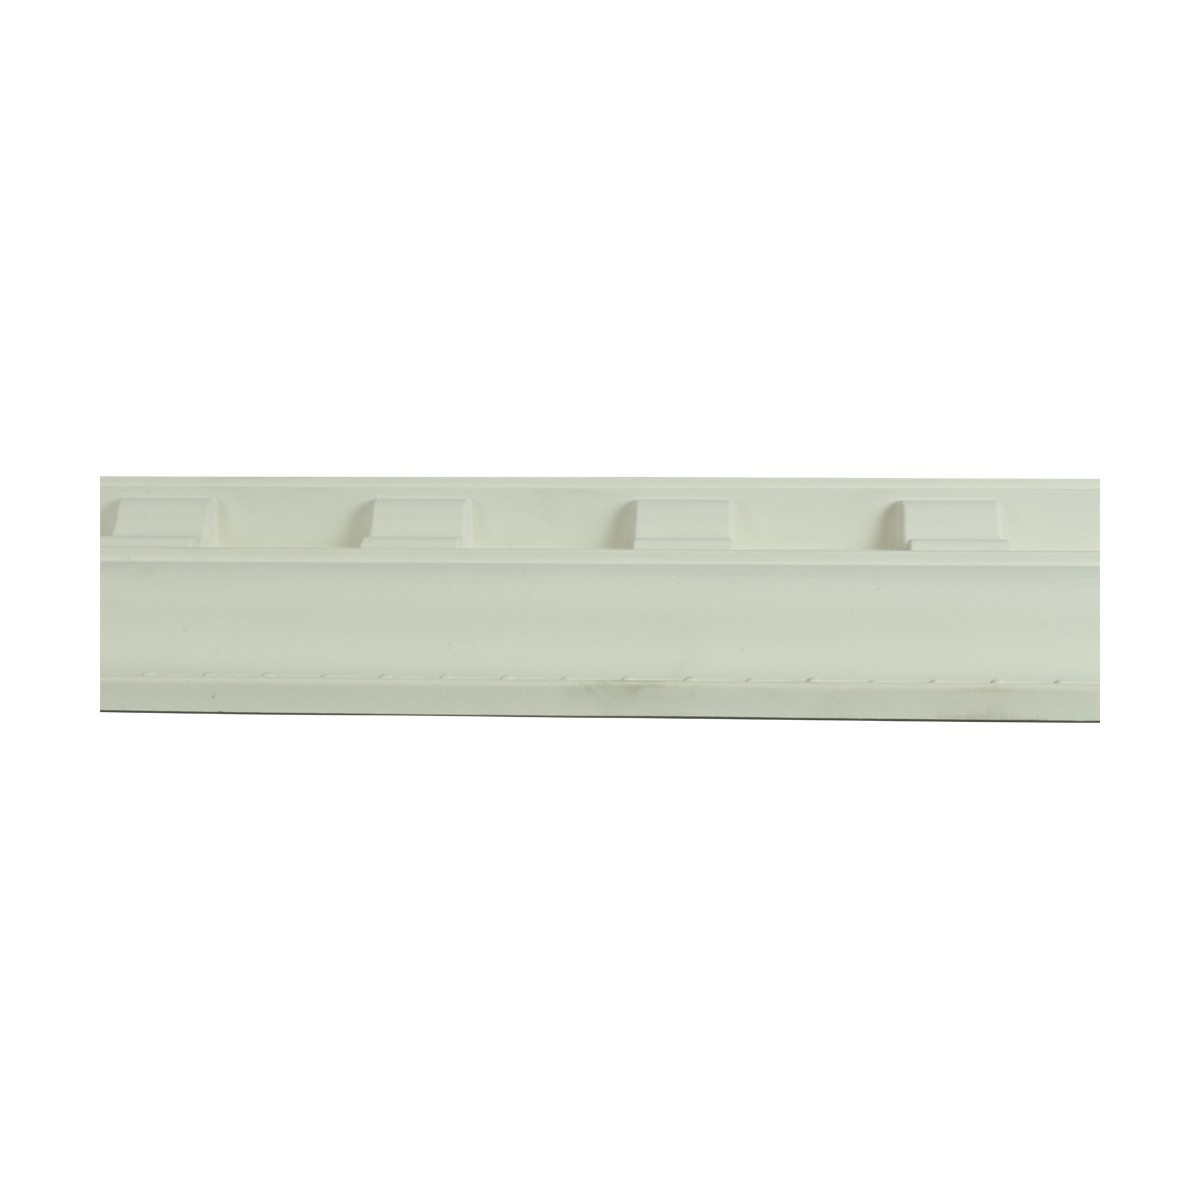 Renovators Supply Ornate Cornice White Urethane Chesterfield Design 6 Pieces Totaling 570 Length White PrePrimed Urethane Crown Cornice Molding Cornice Crown Home Depot Ekena Millwork Molding Wall Ceiling Corner Cornice Crown Cove Molding